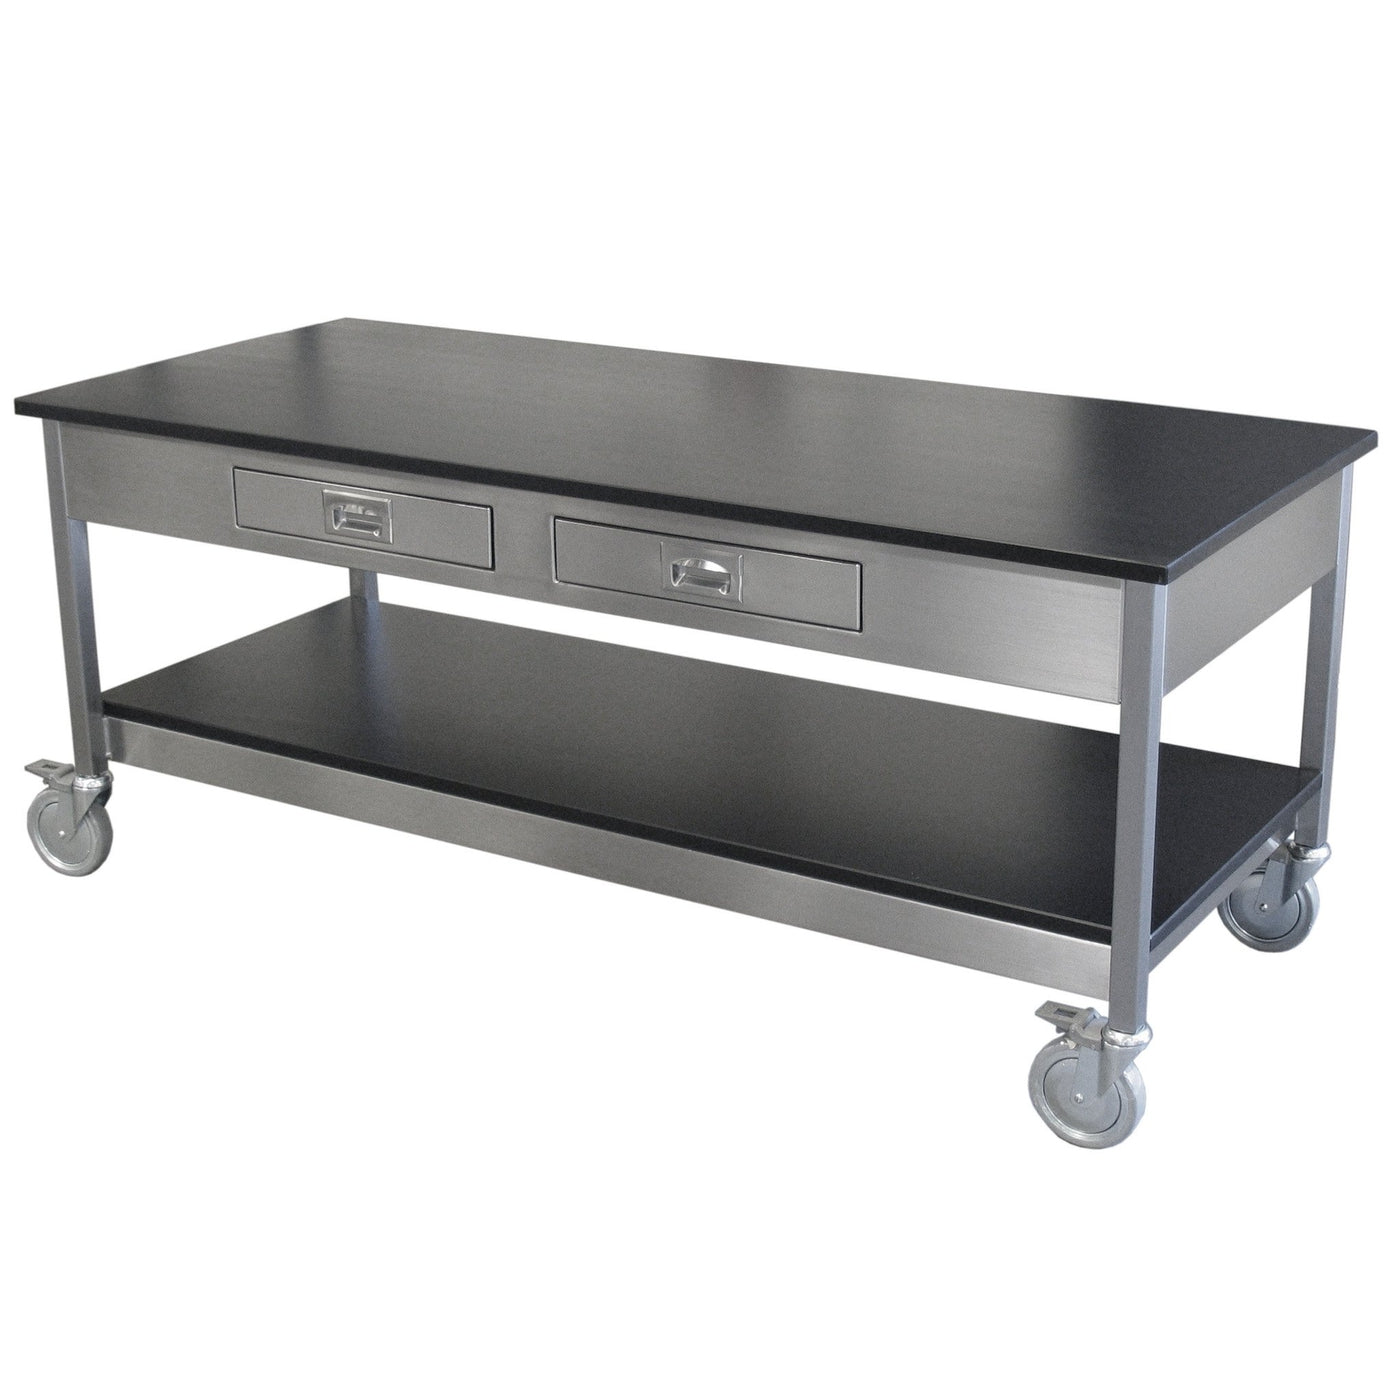 KCMA Cabi  Drawer Socket Replacement 77 41648 together with Diagnostic Trolley 6 Drawer together with P18166 Oates Large Twin Grey Horizontal Storage Stacker Drawers as well Epoxy Lab Table furthermore Addis Large Cream Plastic Rectangular Belfast Sink Washing Up Bowl 14870 P. on plastic drawer cart